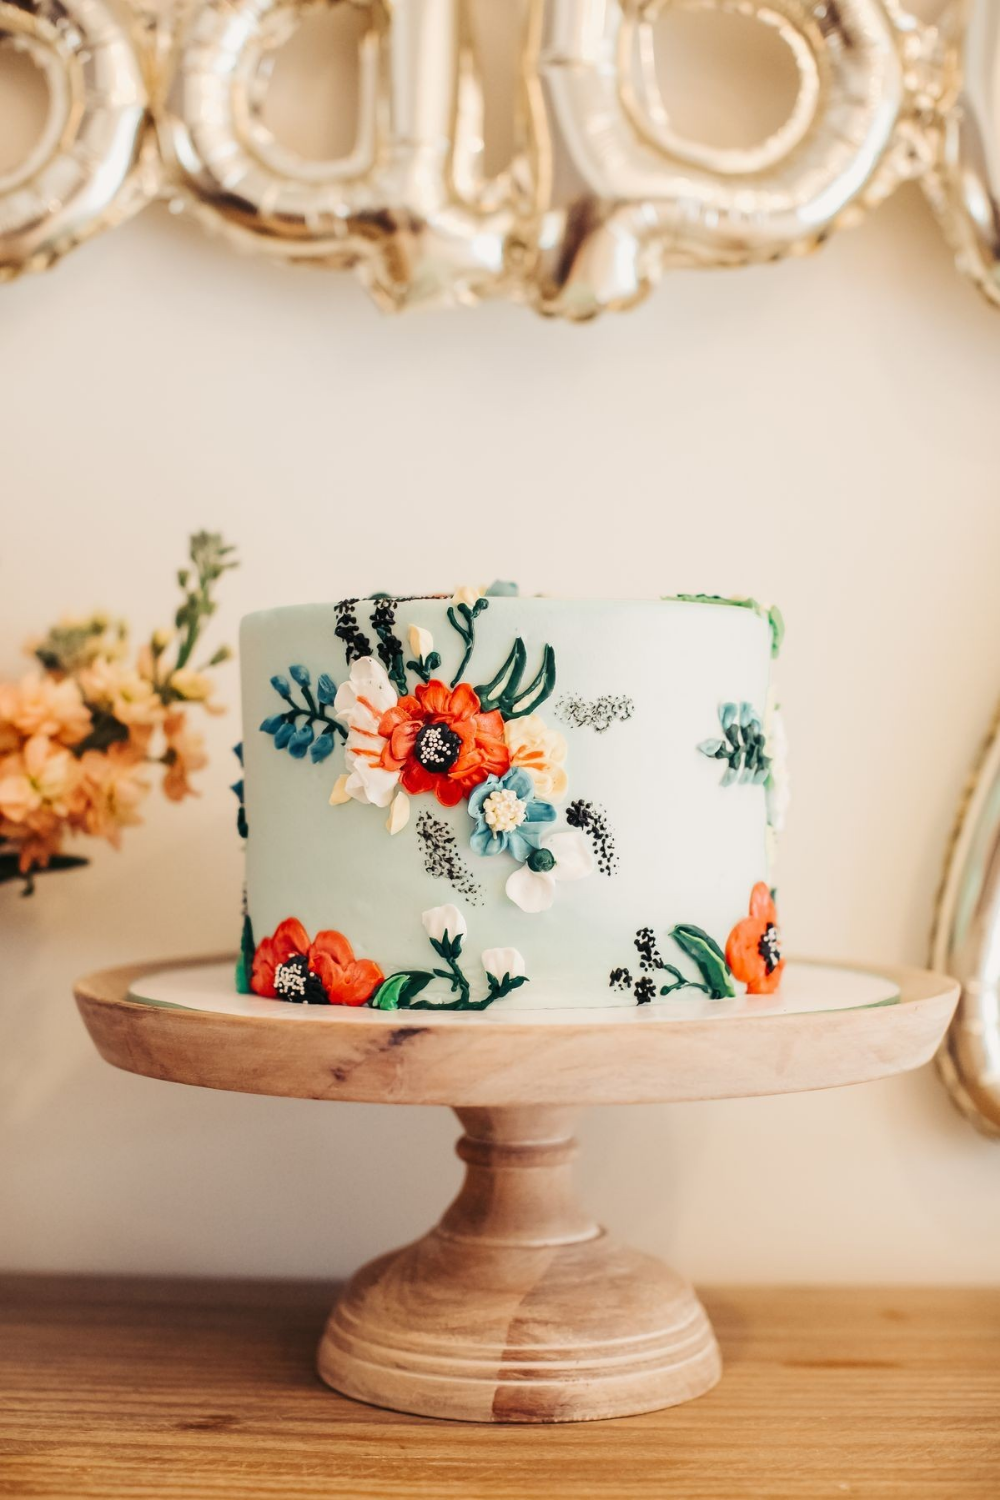 cake stand design pictures Pin on Decorate Cakes.